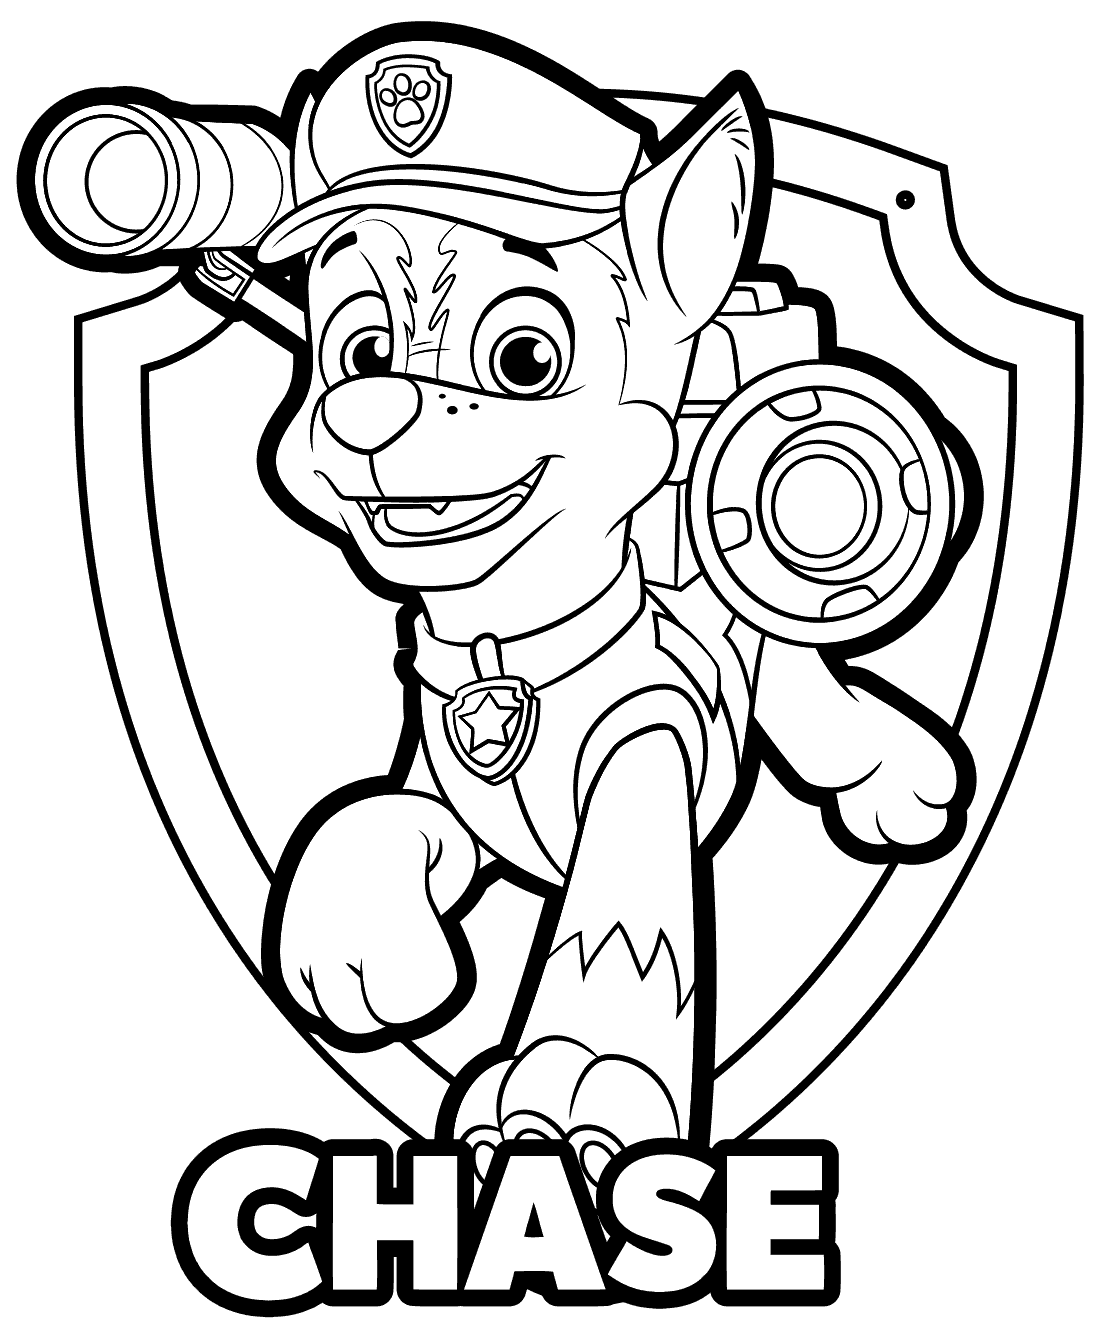 1100x1340 Paw Patrol Chase Coloring Pages Fargeleggingsark